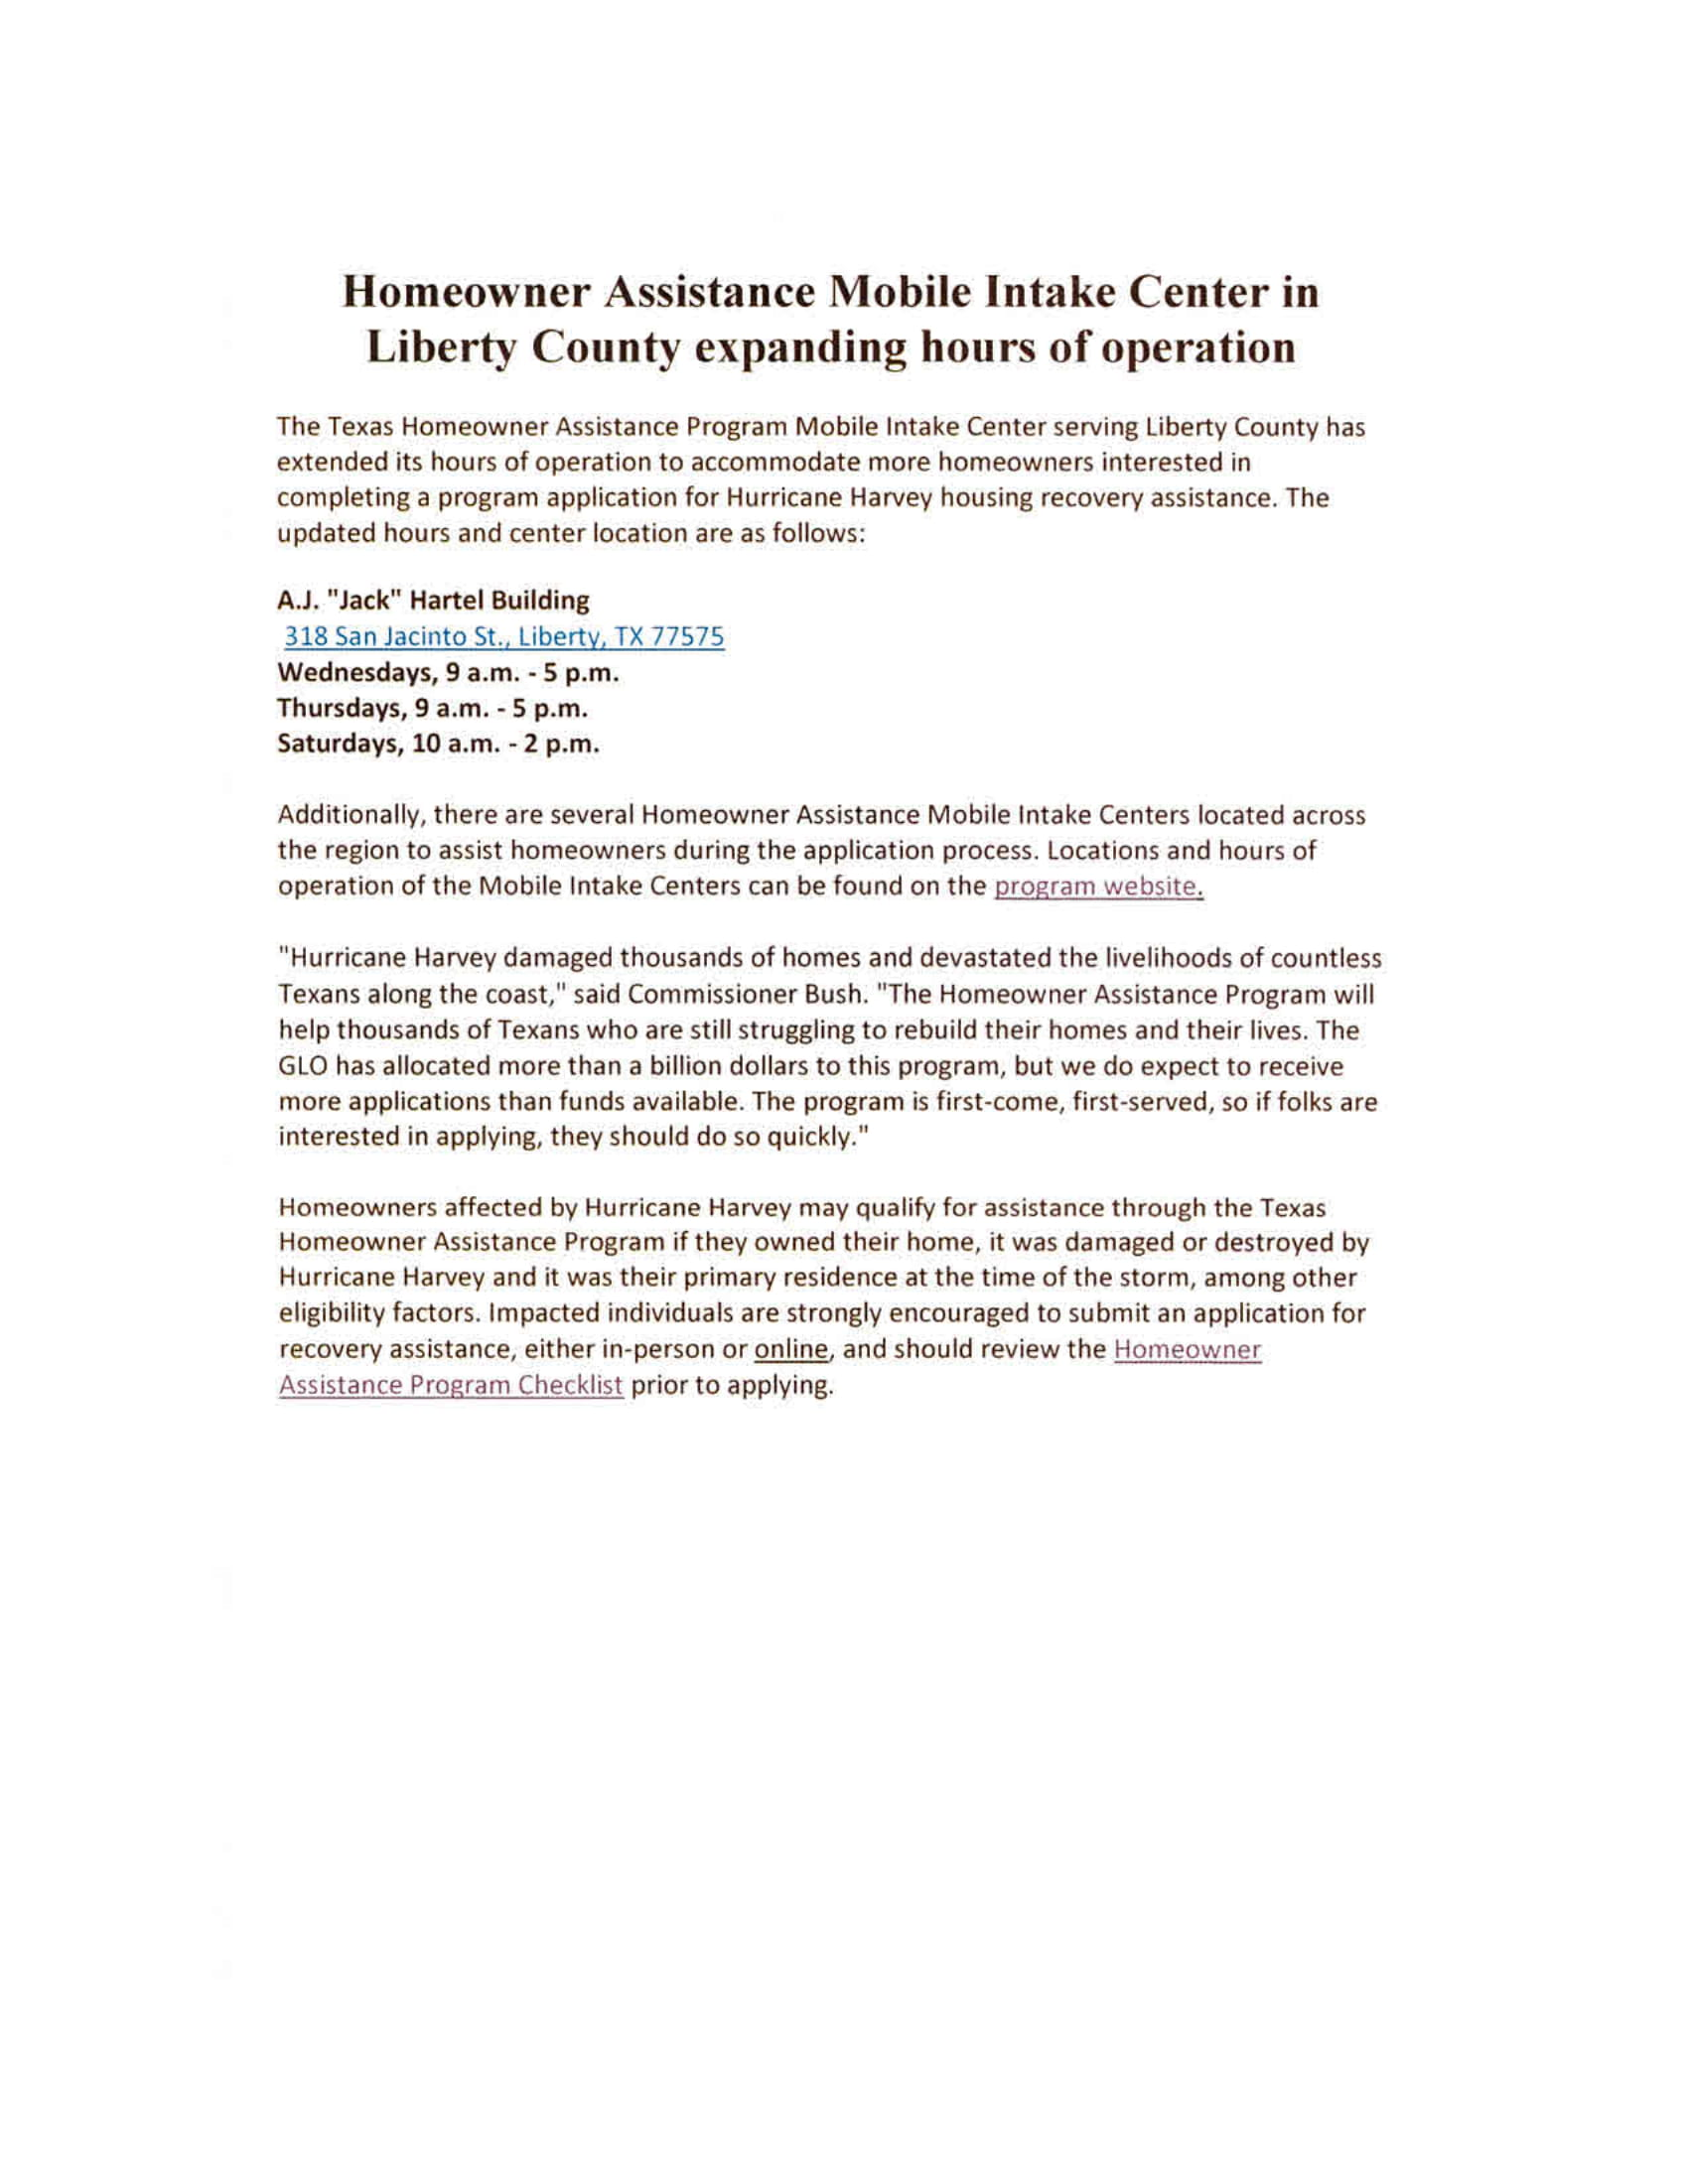 Homeowner Assistance Hurricane Harvey Jan 2019-1